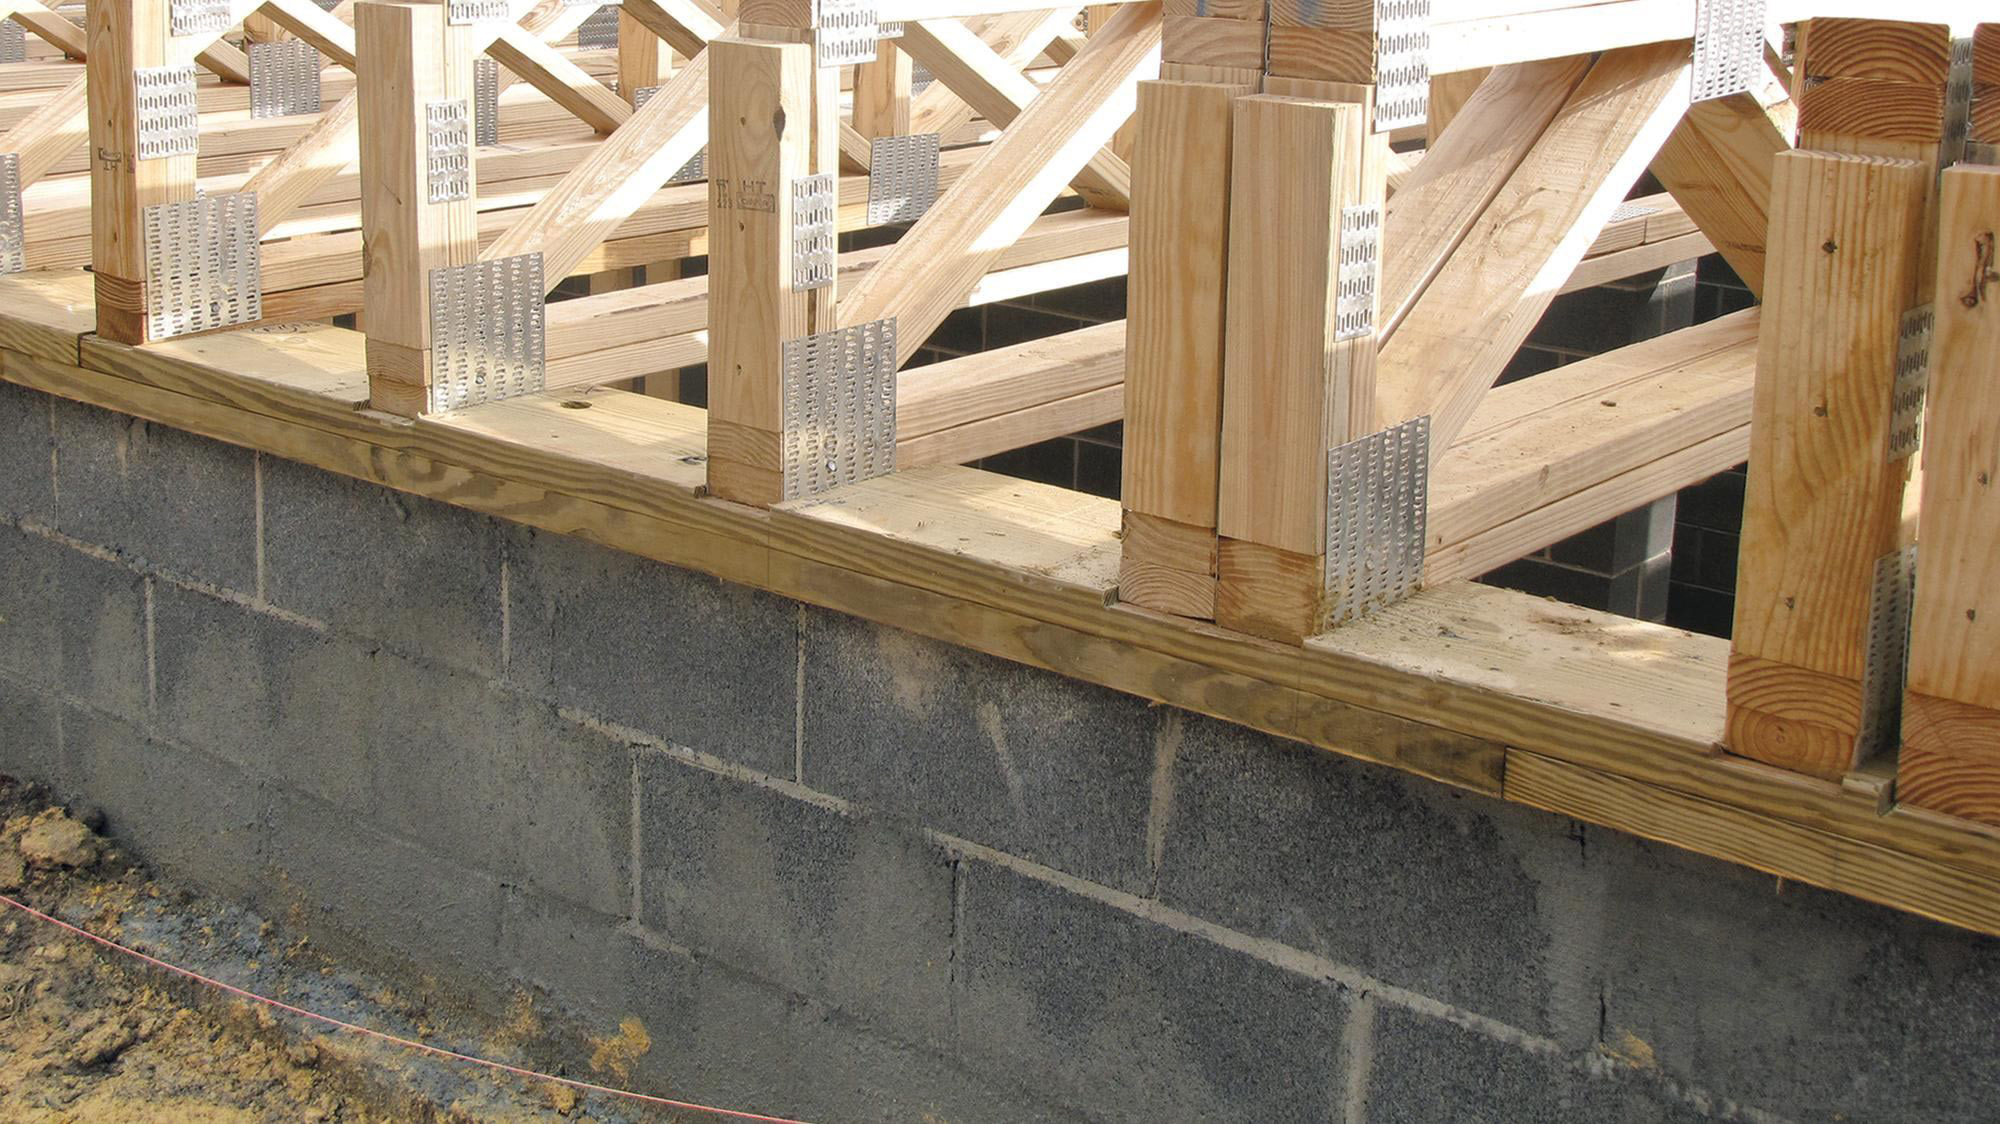 Floor trusses jlc online Floor trusses vs floor joists